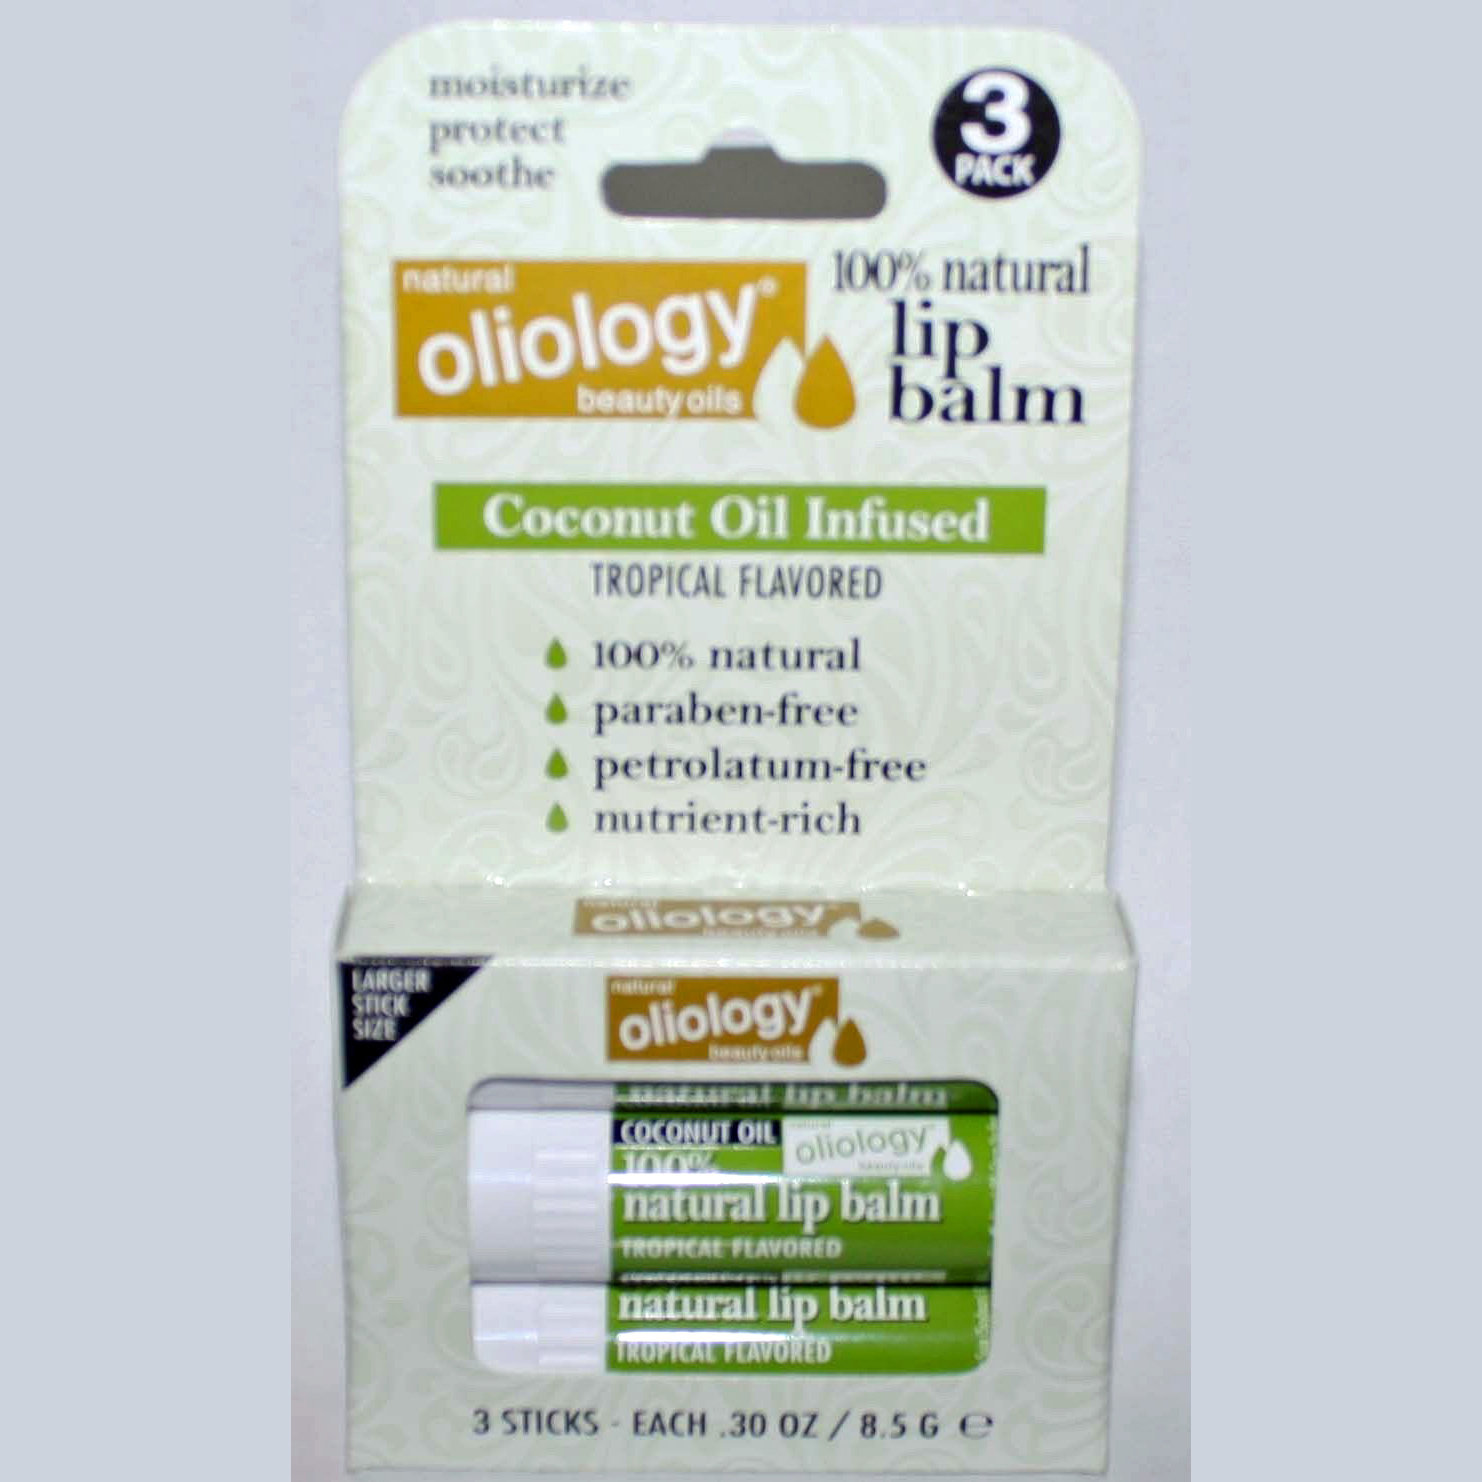 3 Pack Oliology 100% Natural Lip Balm Coconut Oil Infused/Tropical Flavored 11573